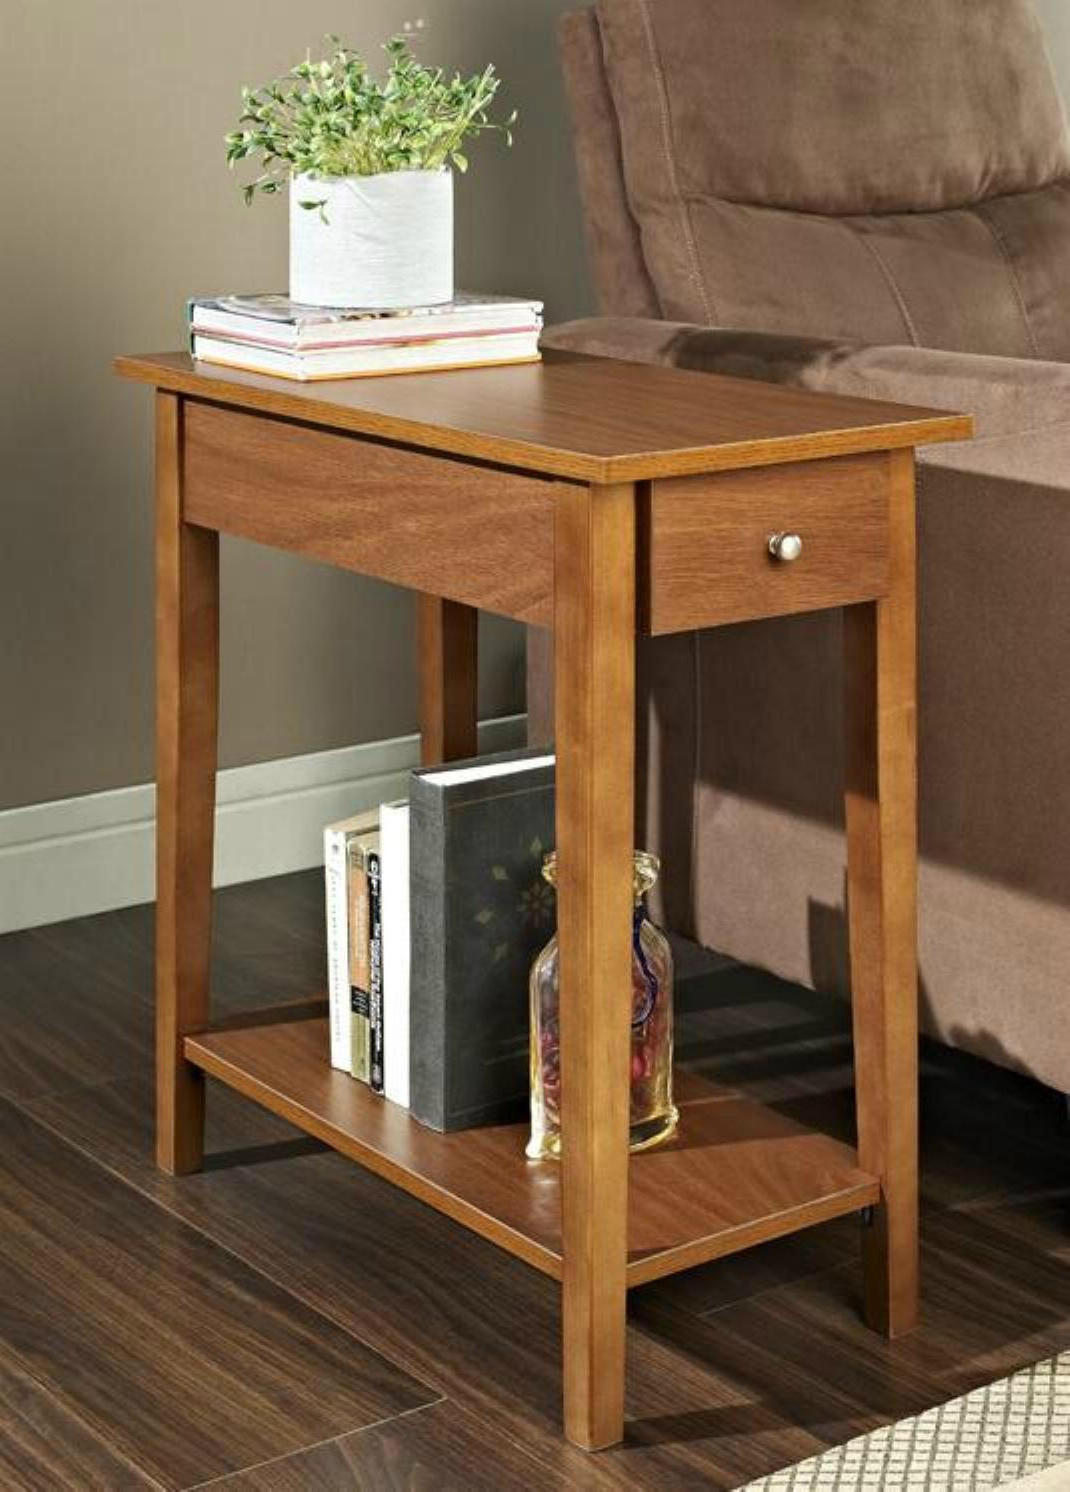 End tables for living room living room ideas on a budget for Small designer tables